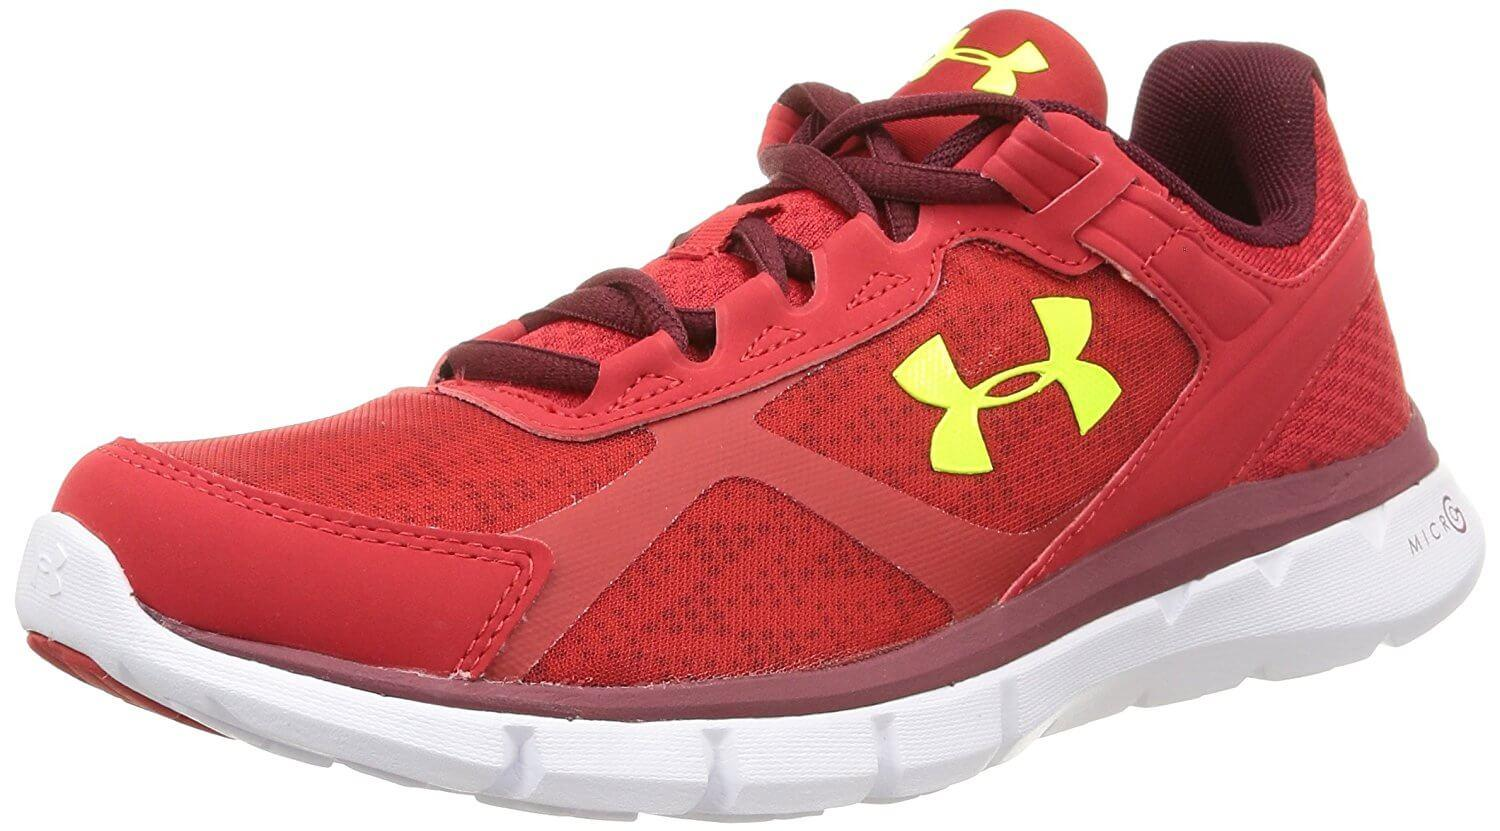 Cheap Under Armour Shoes China